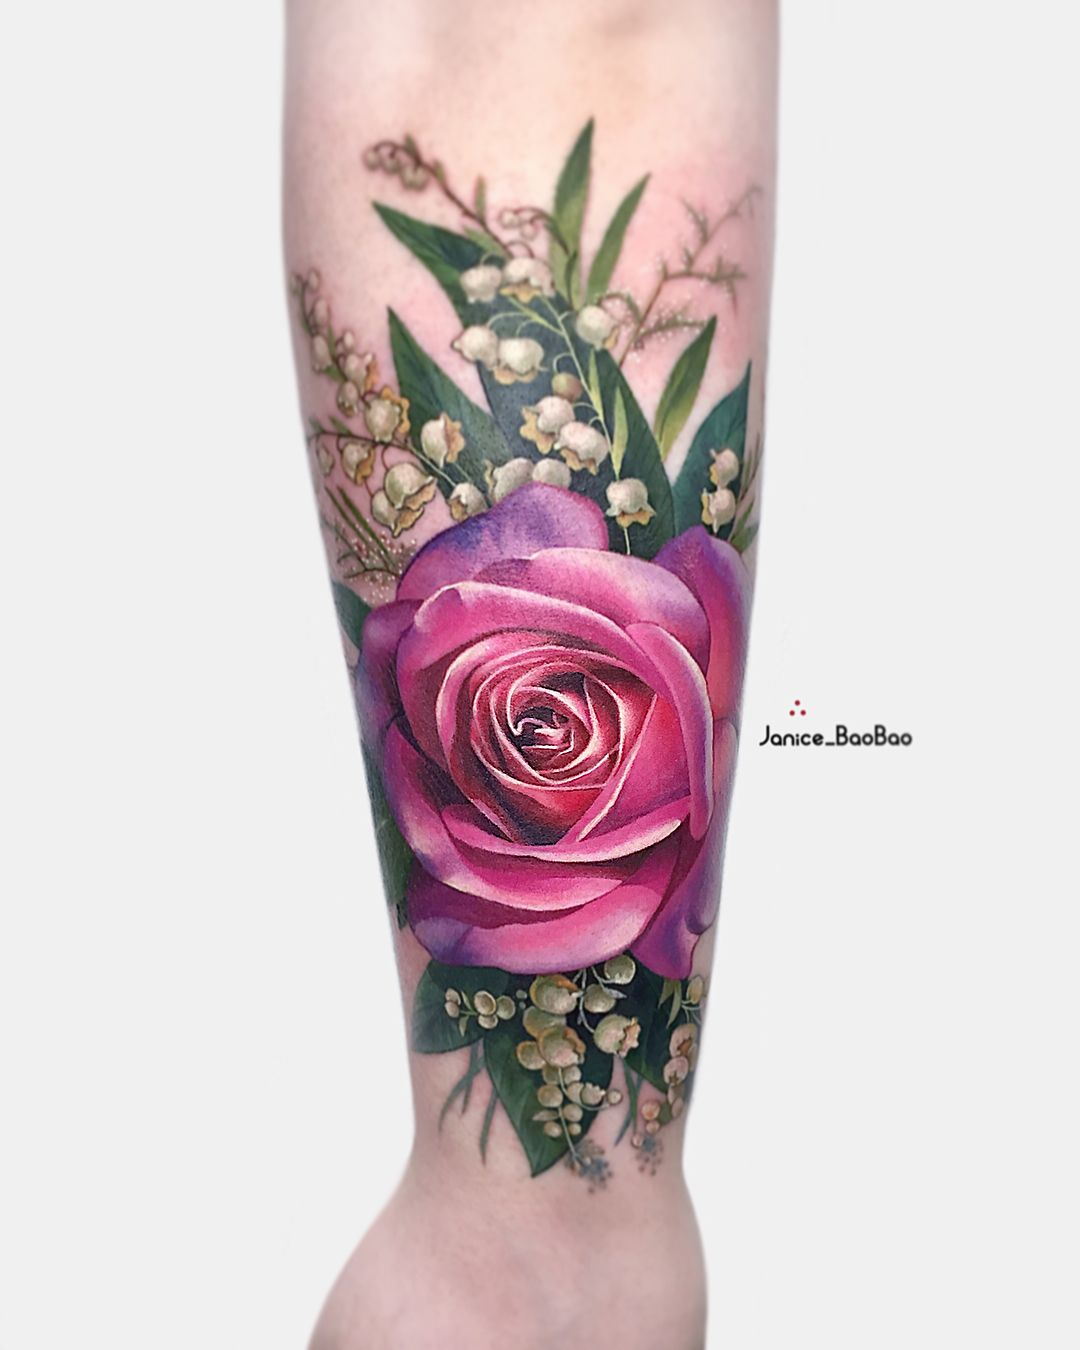 d5e6048b0 Rose and lily of the valley. 🌷2 sessions on @hidjack ▫️rose healed. .  ▫️OPENING :Sep-19,26-Oct- ▫️DMs please.